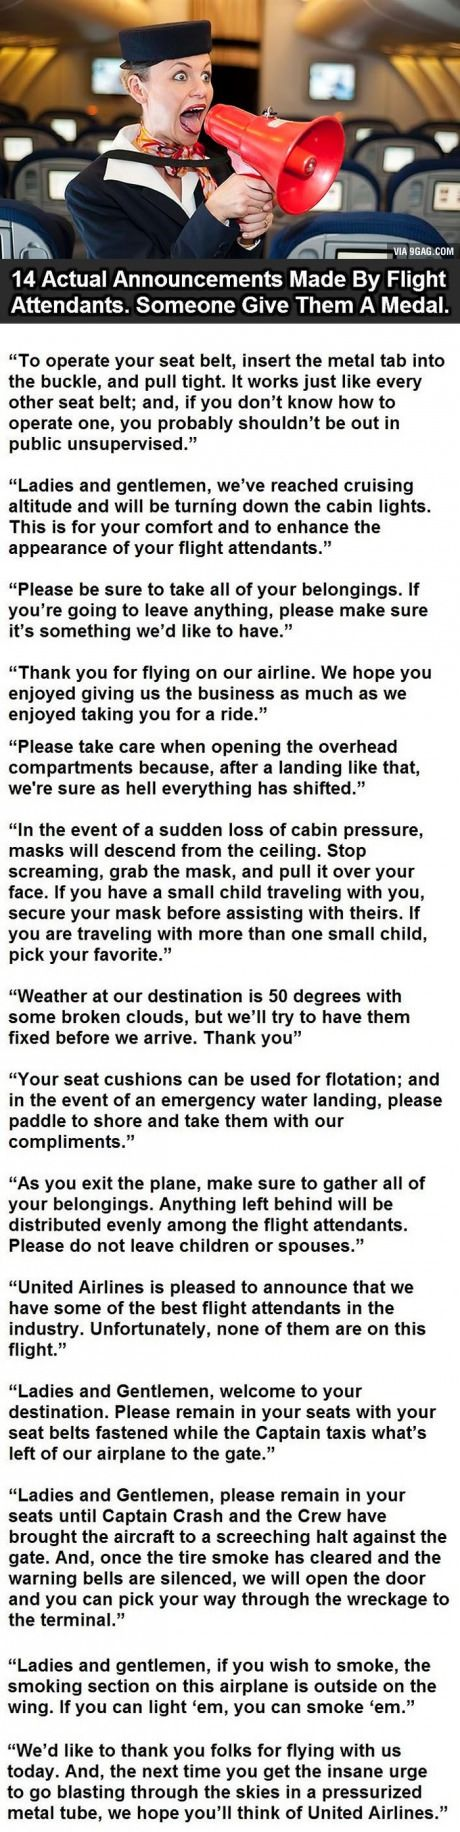 best ideas about flight attendant flight 14 actual announcements by flight attendants this is how it should be